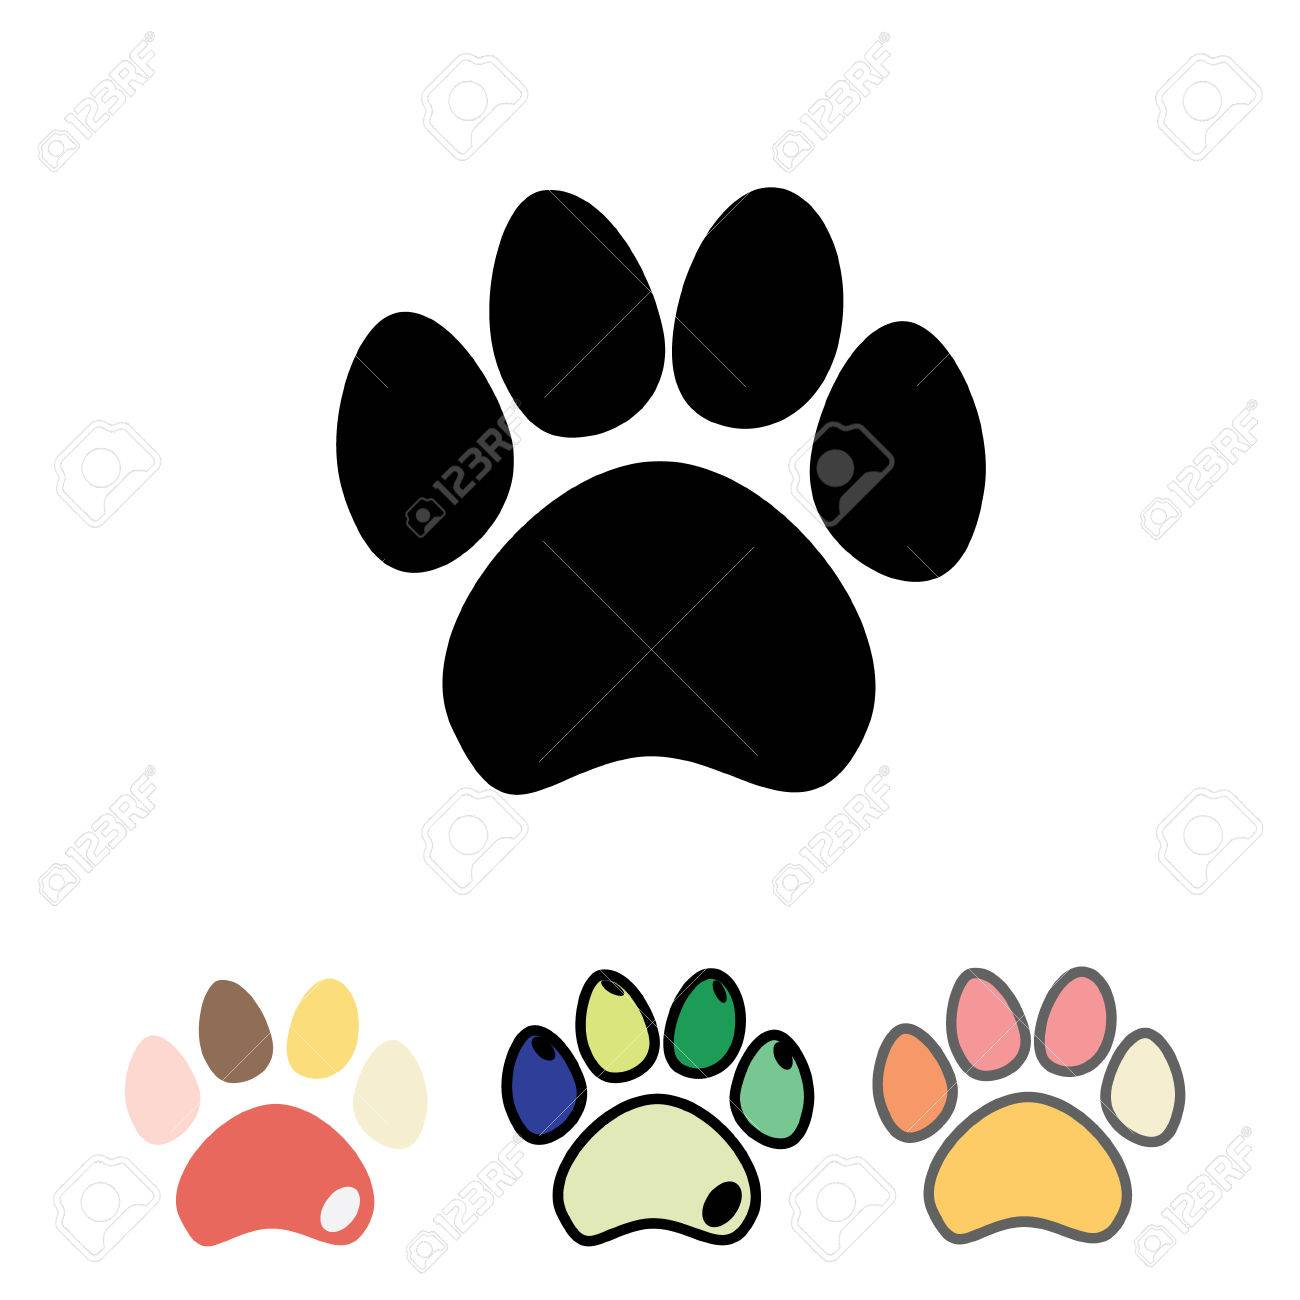 601e372632f5 Vector illustration. Cats or dogs paws set. Cute funny silhouette of animal  footprints on white background.